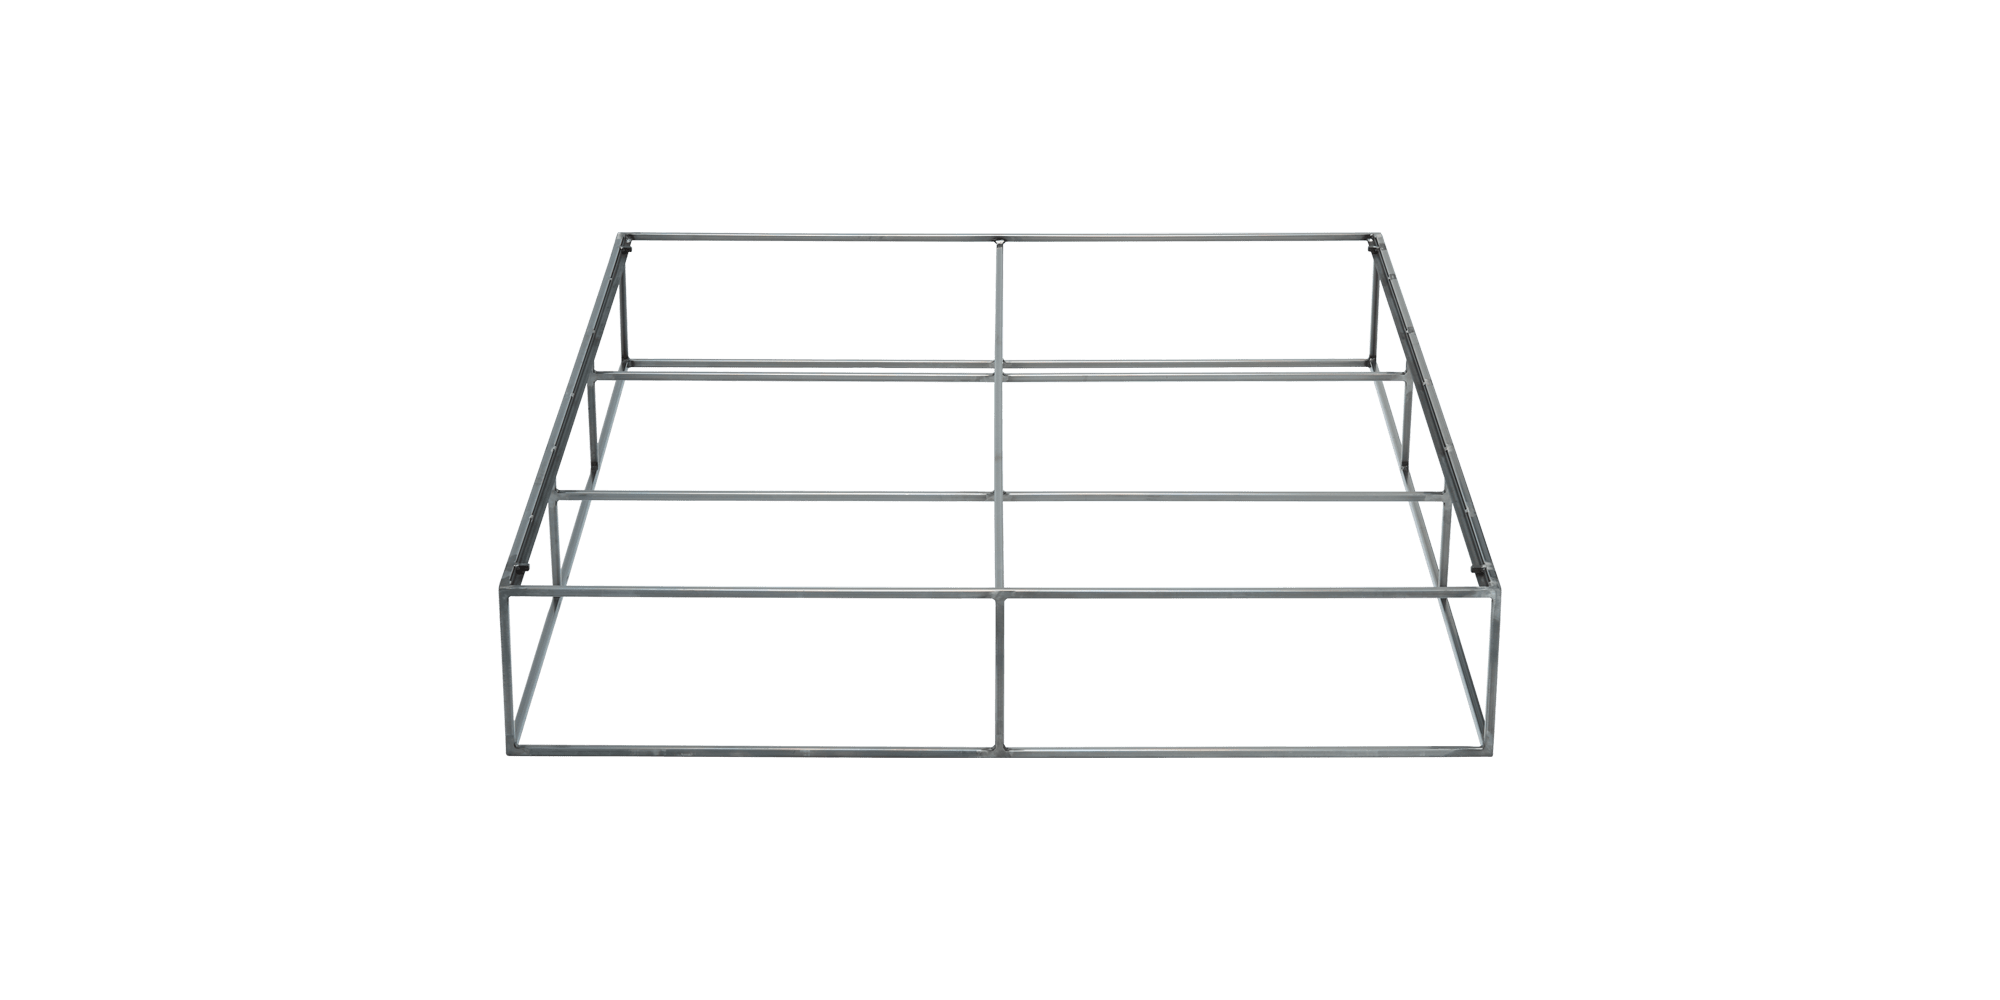 Bett Calla 120x200 The Metal Bed Ion From Berlin Minimalism Meets Industrial Design